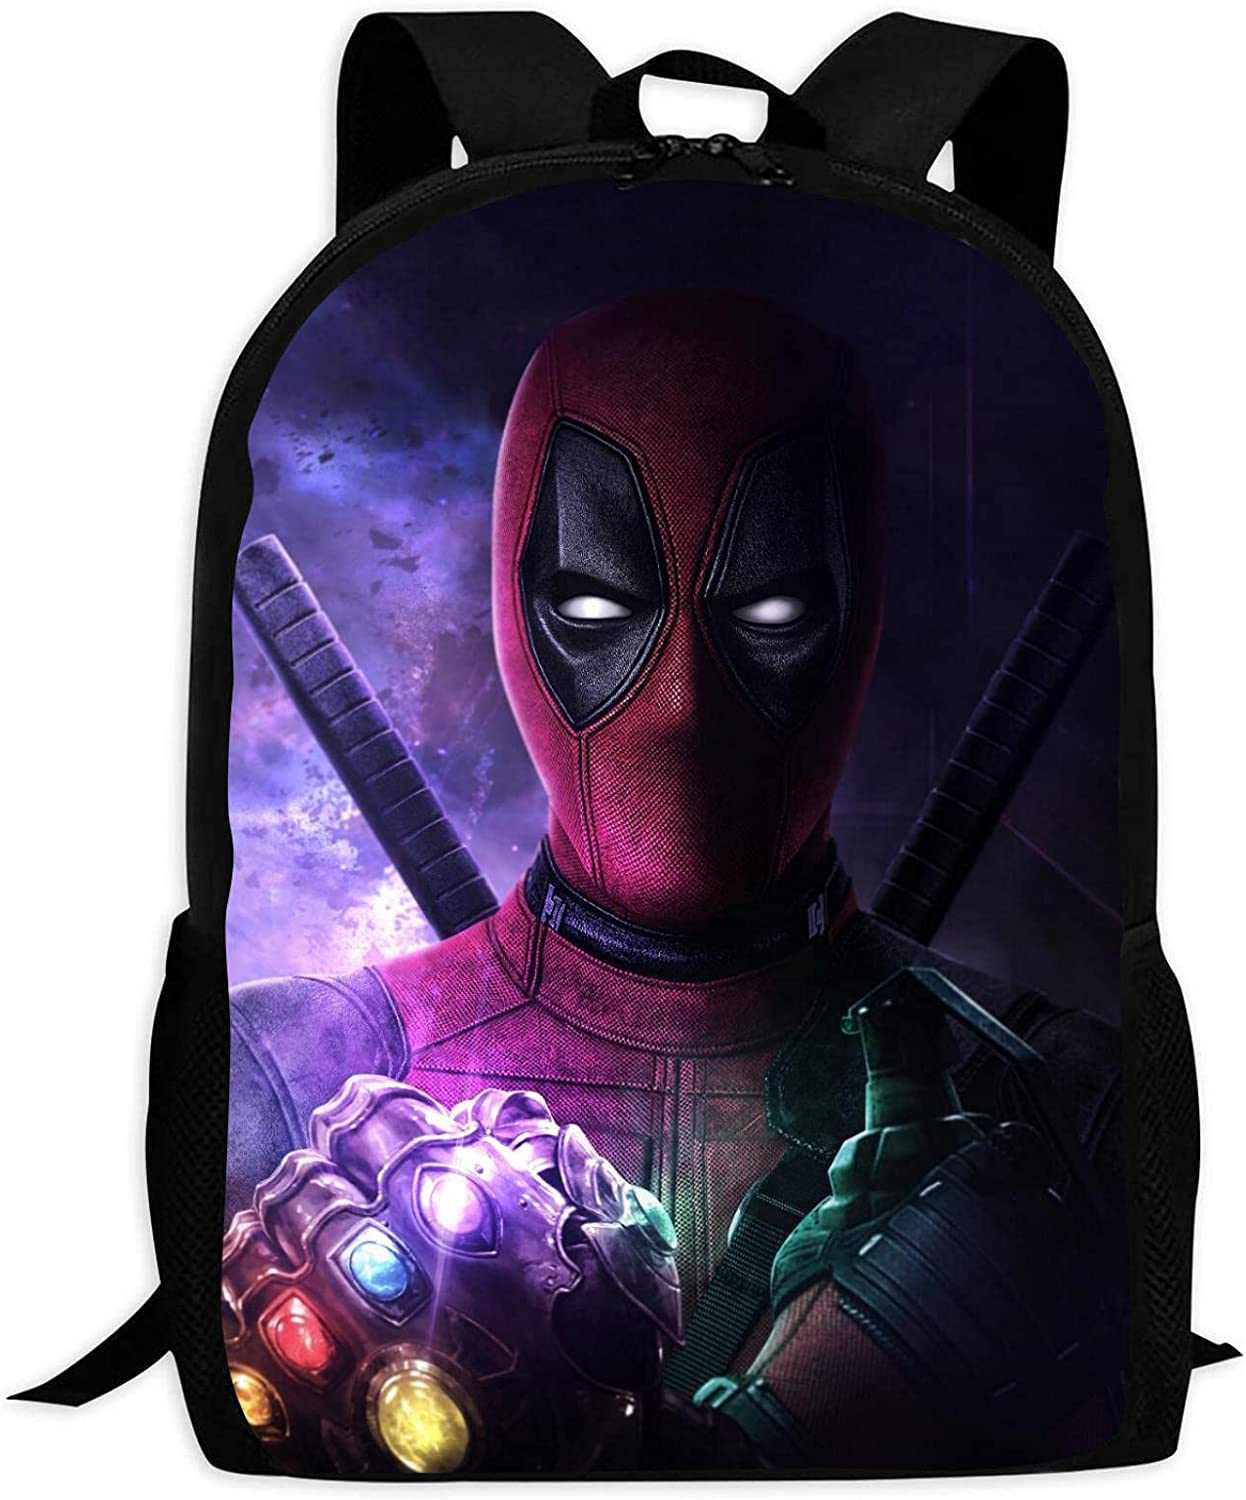 Special Campaign Super beauty product restock quality top Deadpool Backpack Schoolbags Lightweight Travel Boys Bag Gir for